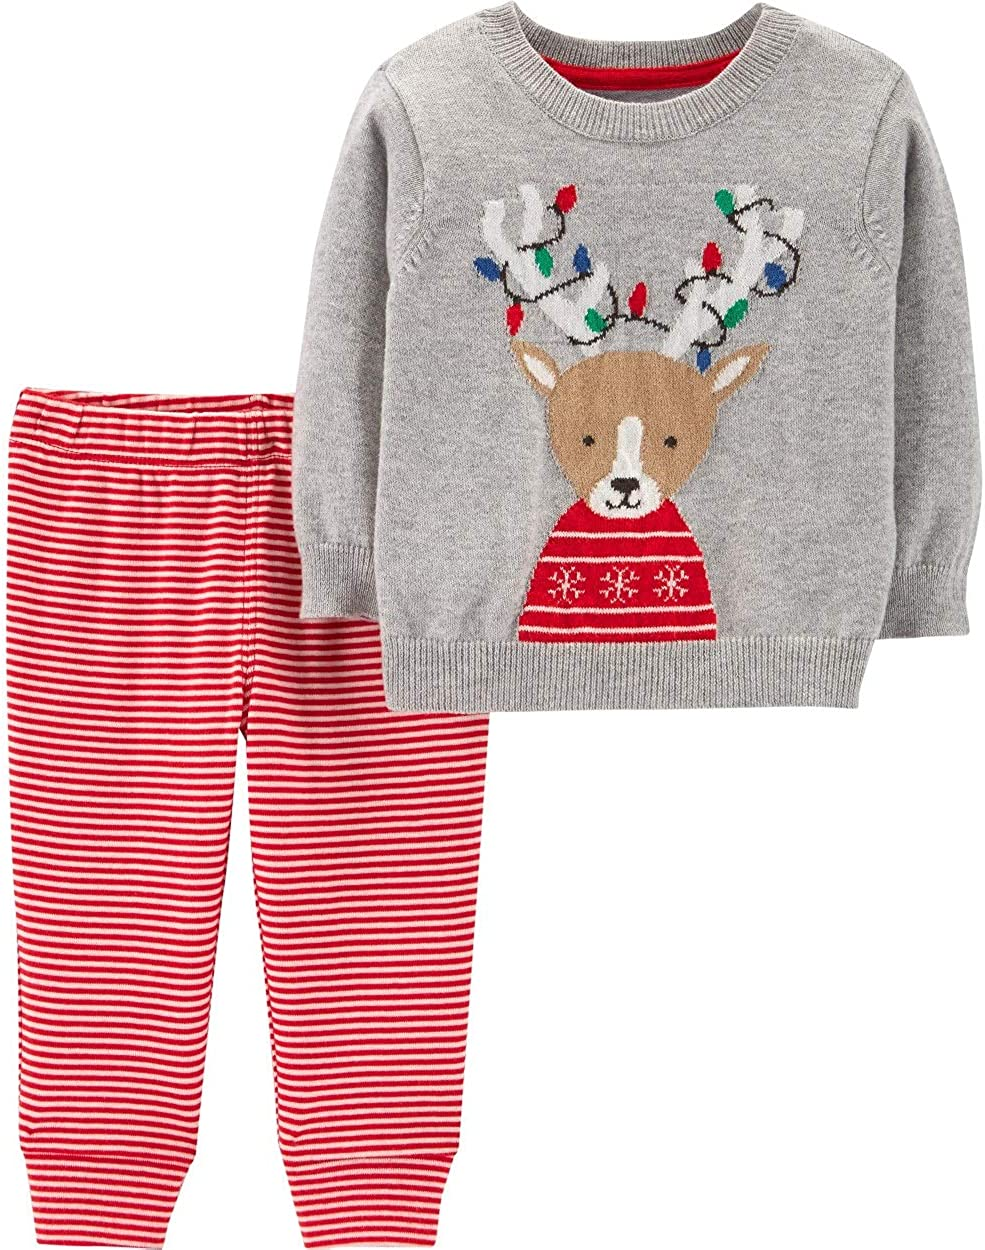 Carter's Baby 2-Piece Reindeer Sweater & Striped Pant Set Size 9 Months Gray/Red